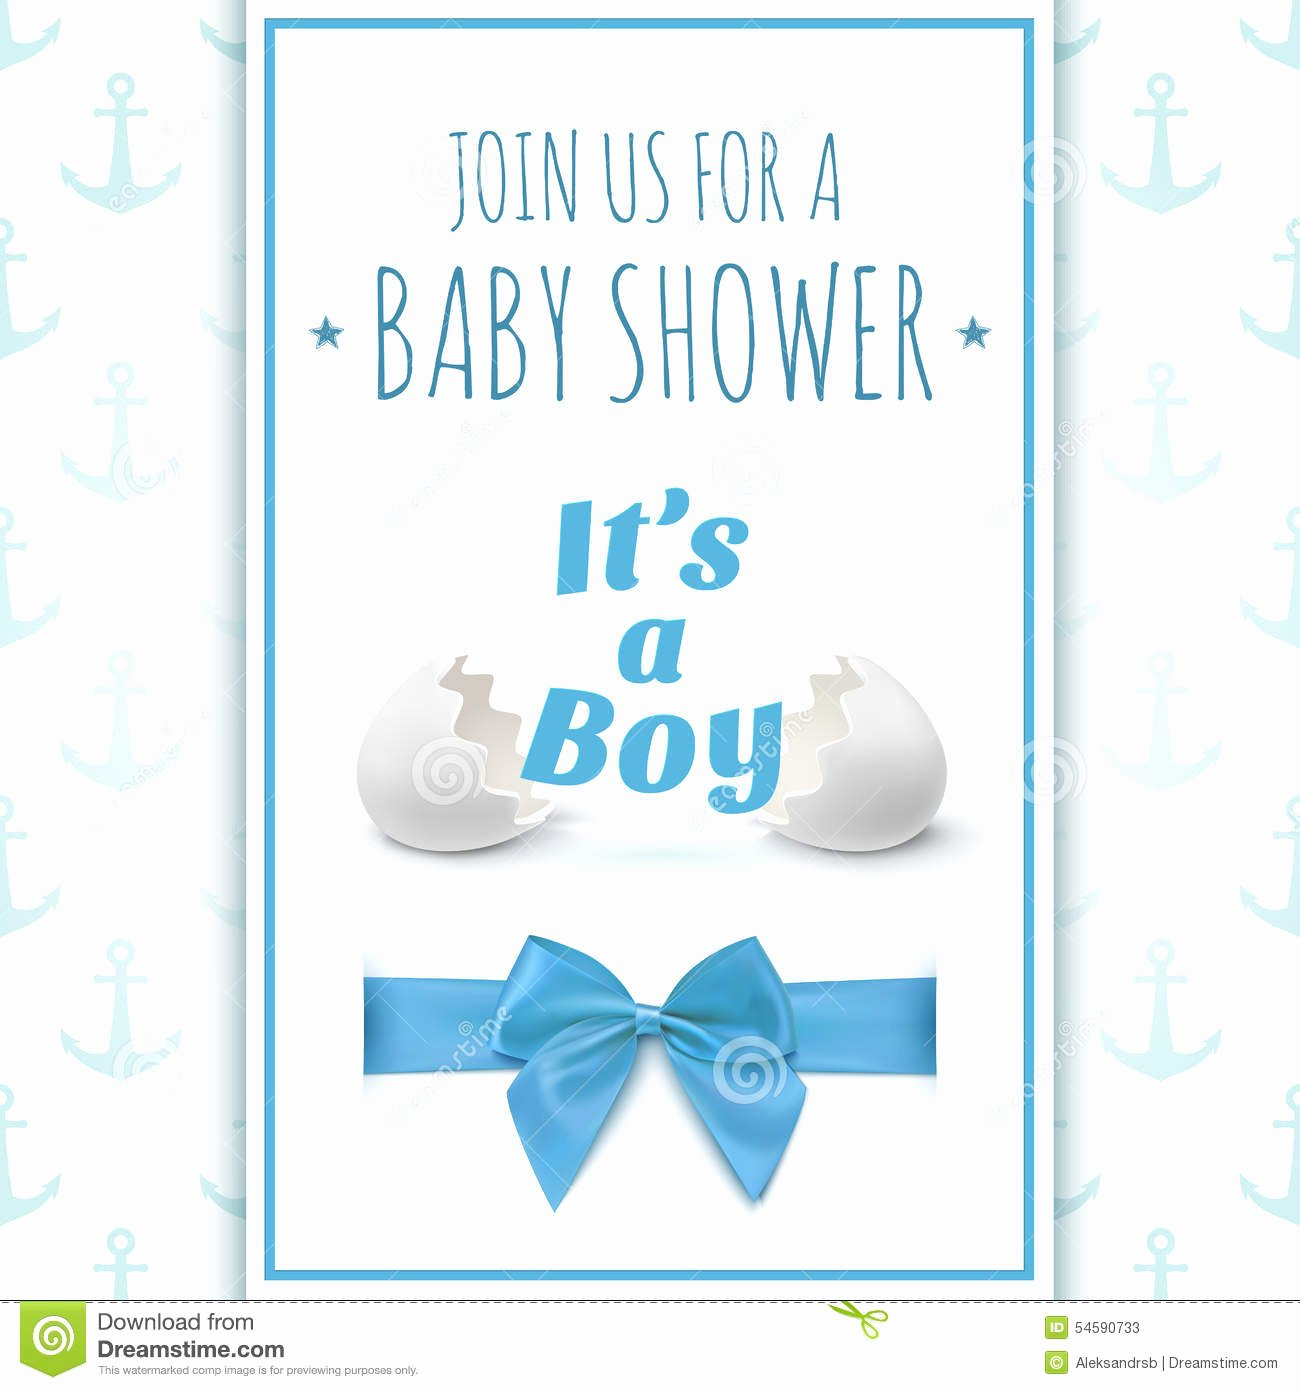 It's A Boy Announcement Template Elegant Its A Boy Template for Baby Shower Celebration Stock